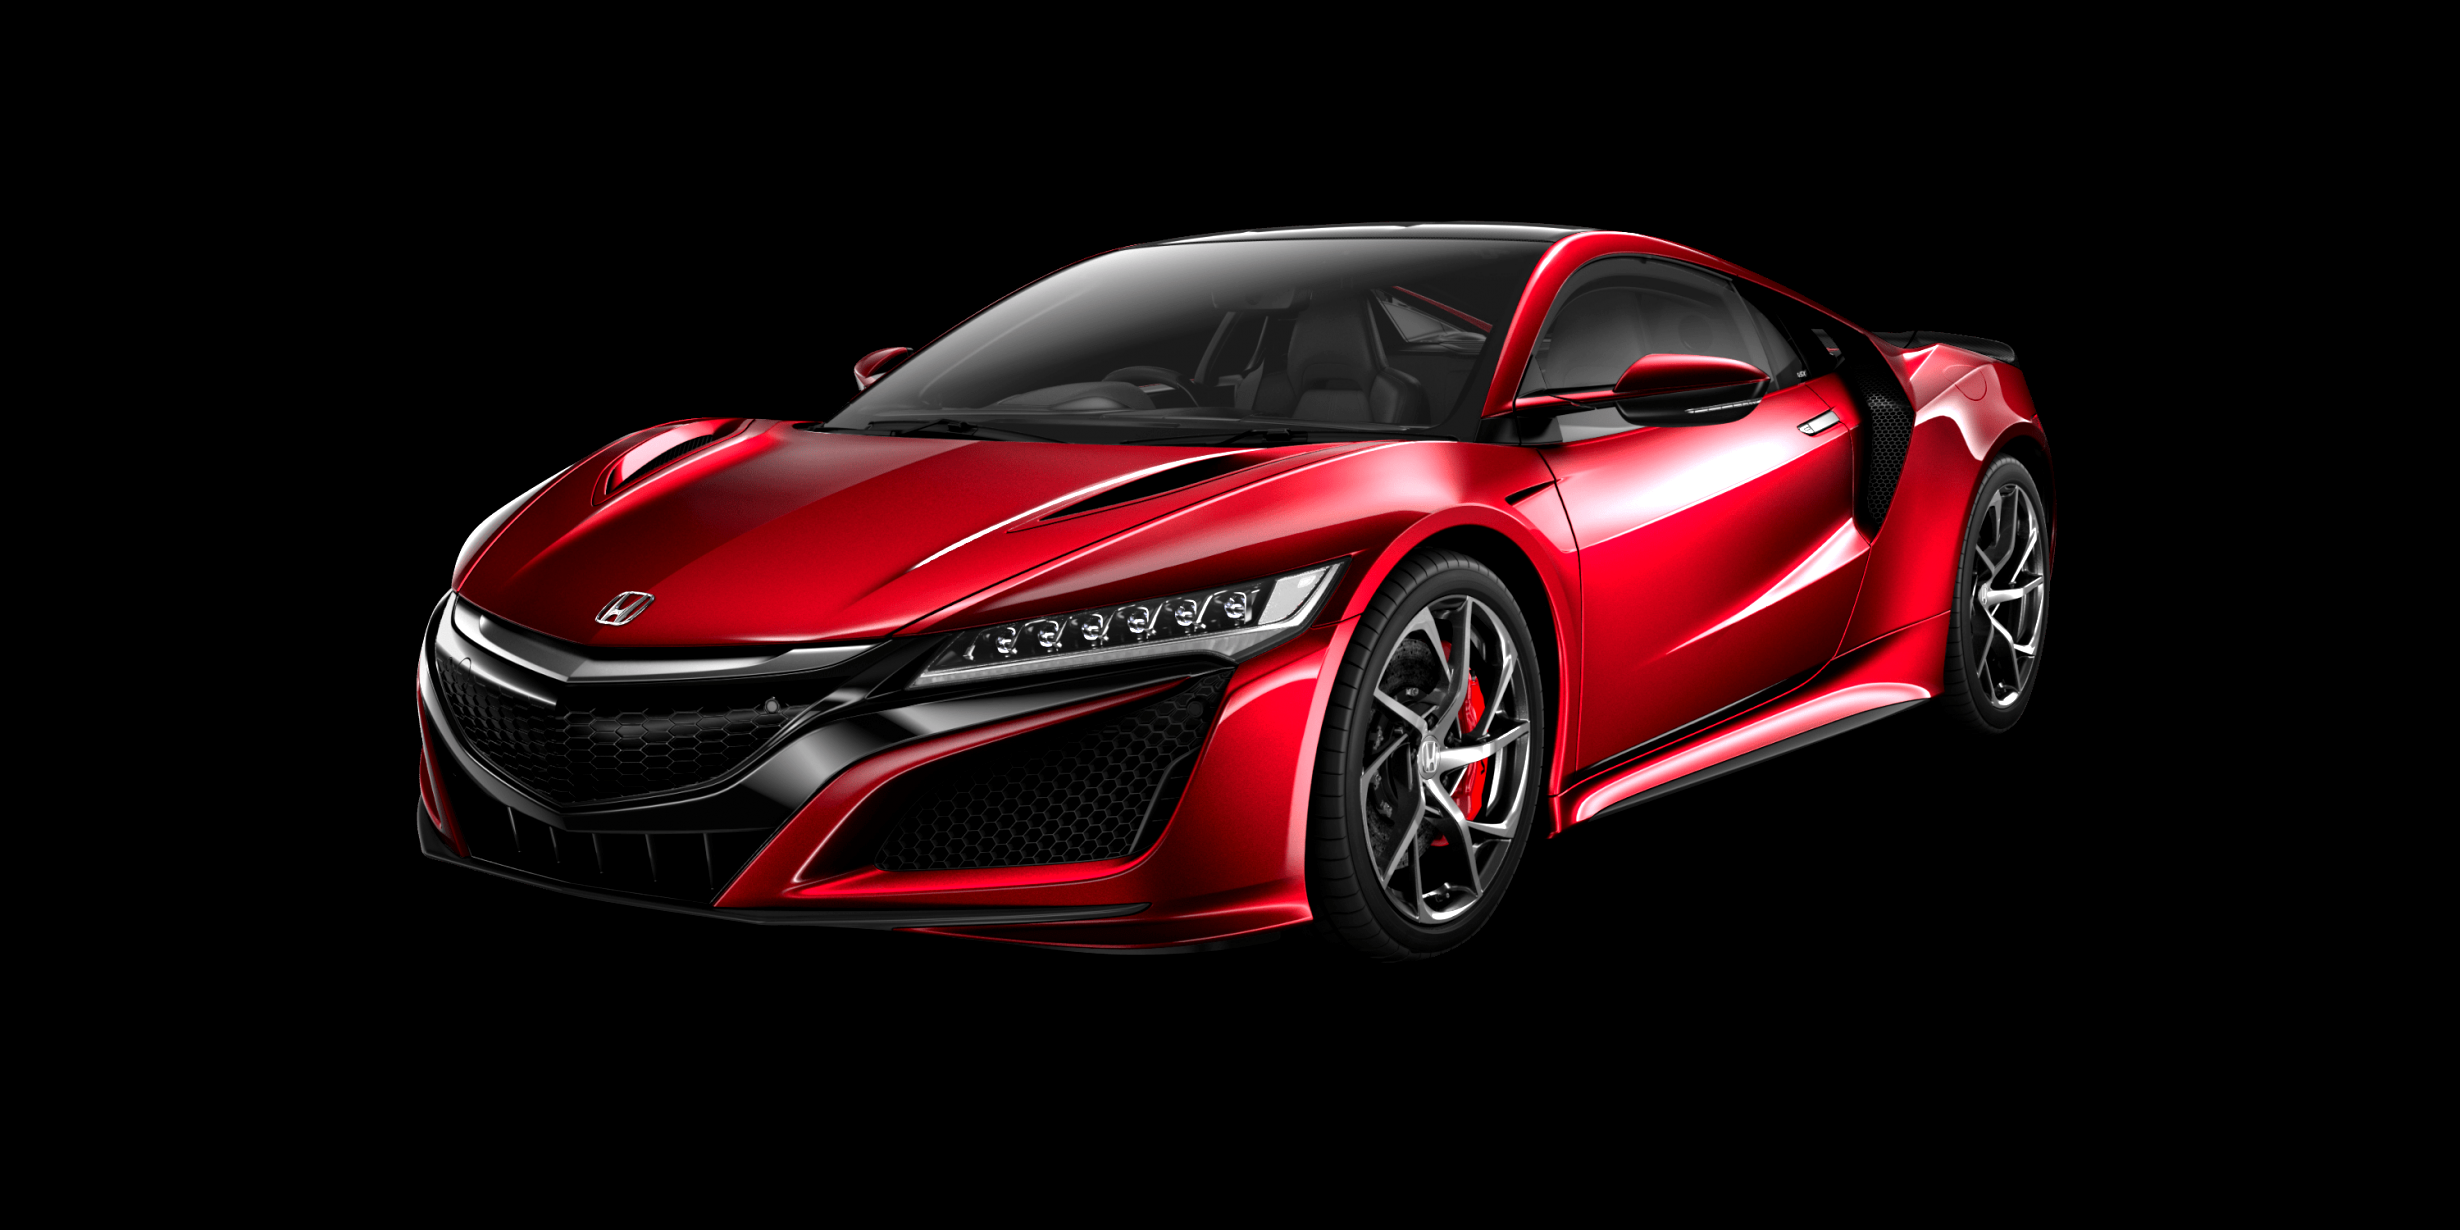 2020 honda nsx price Review and Release date